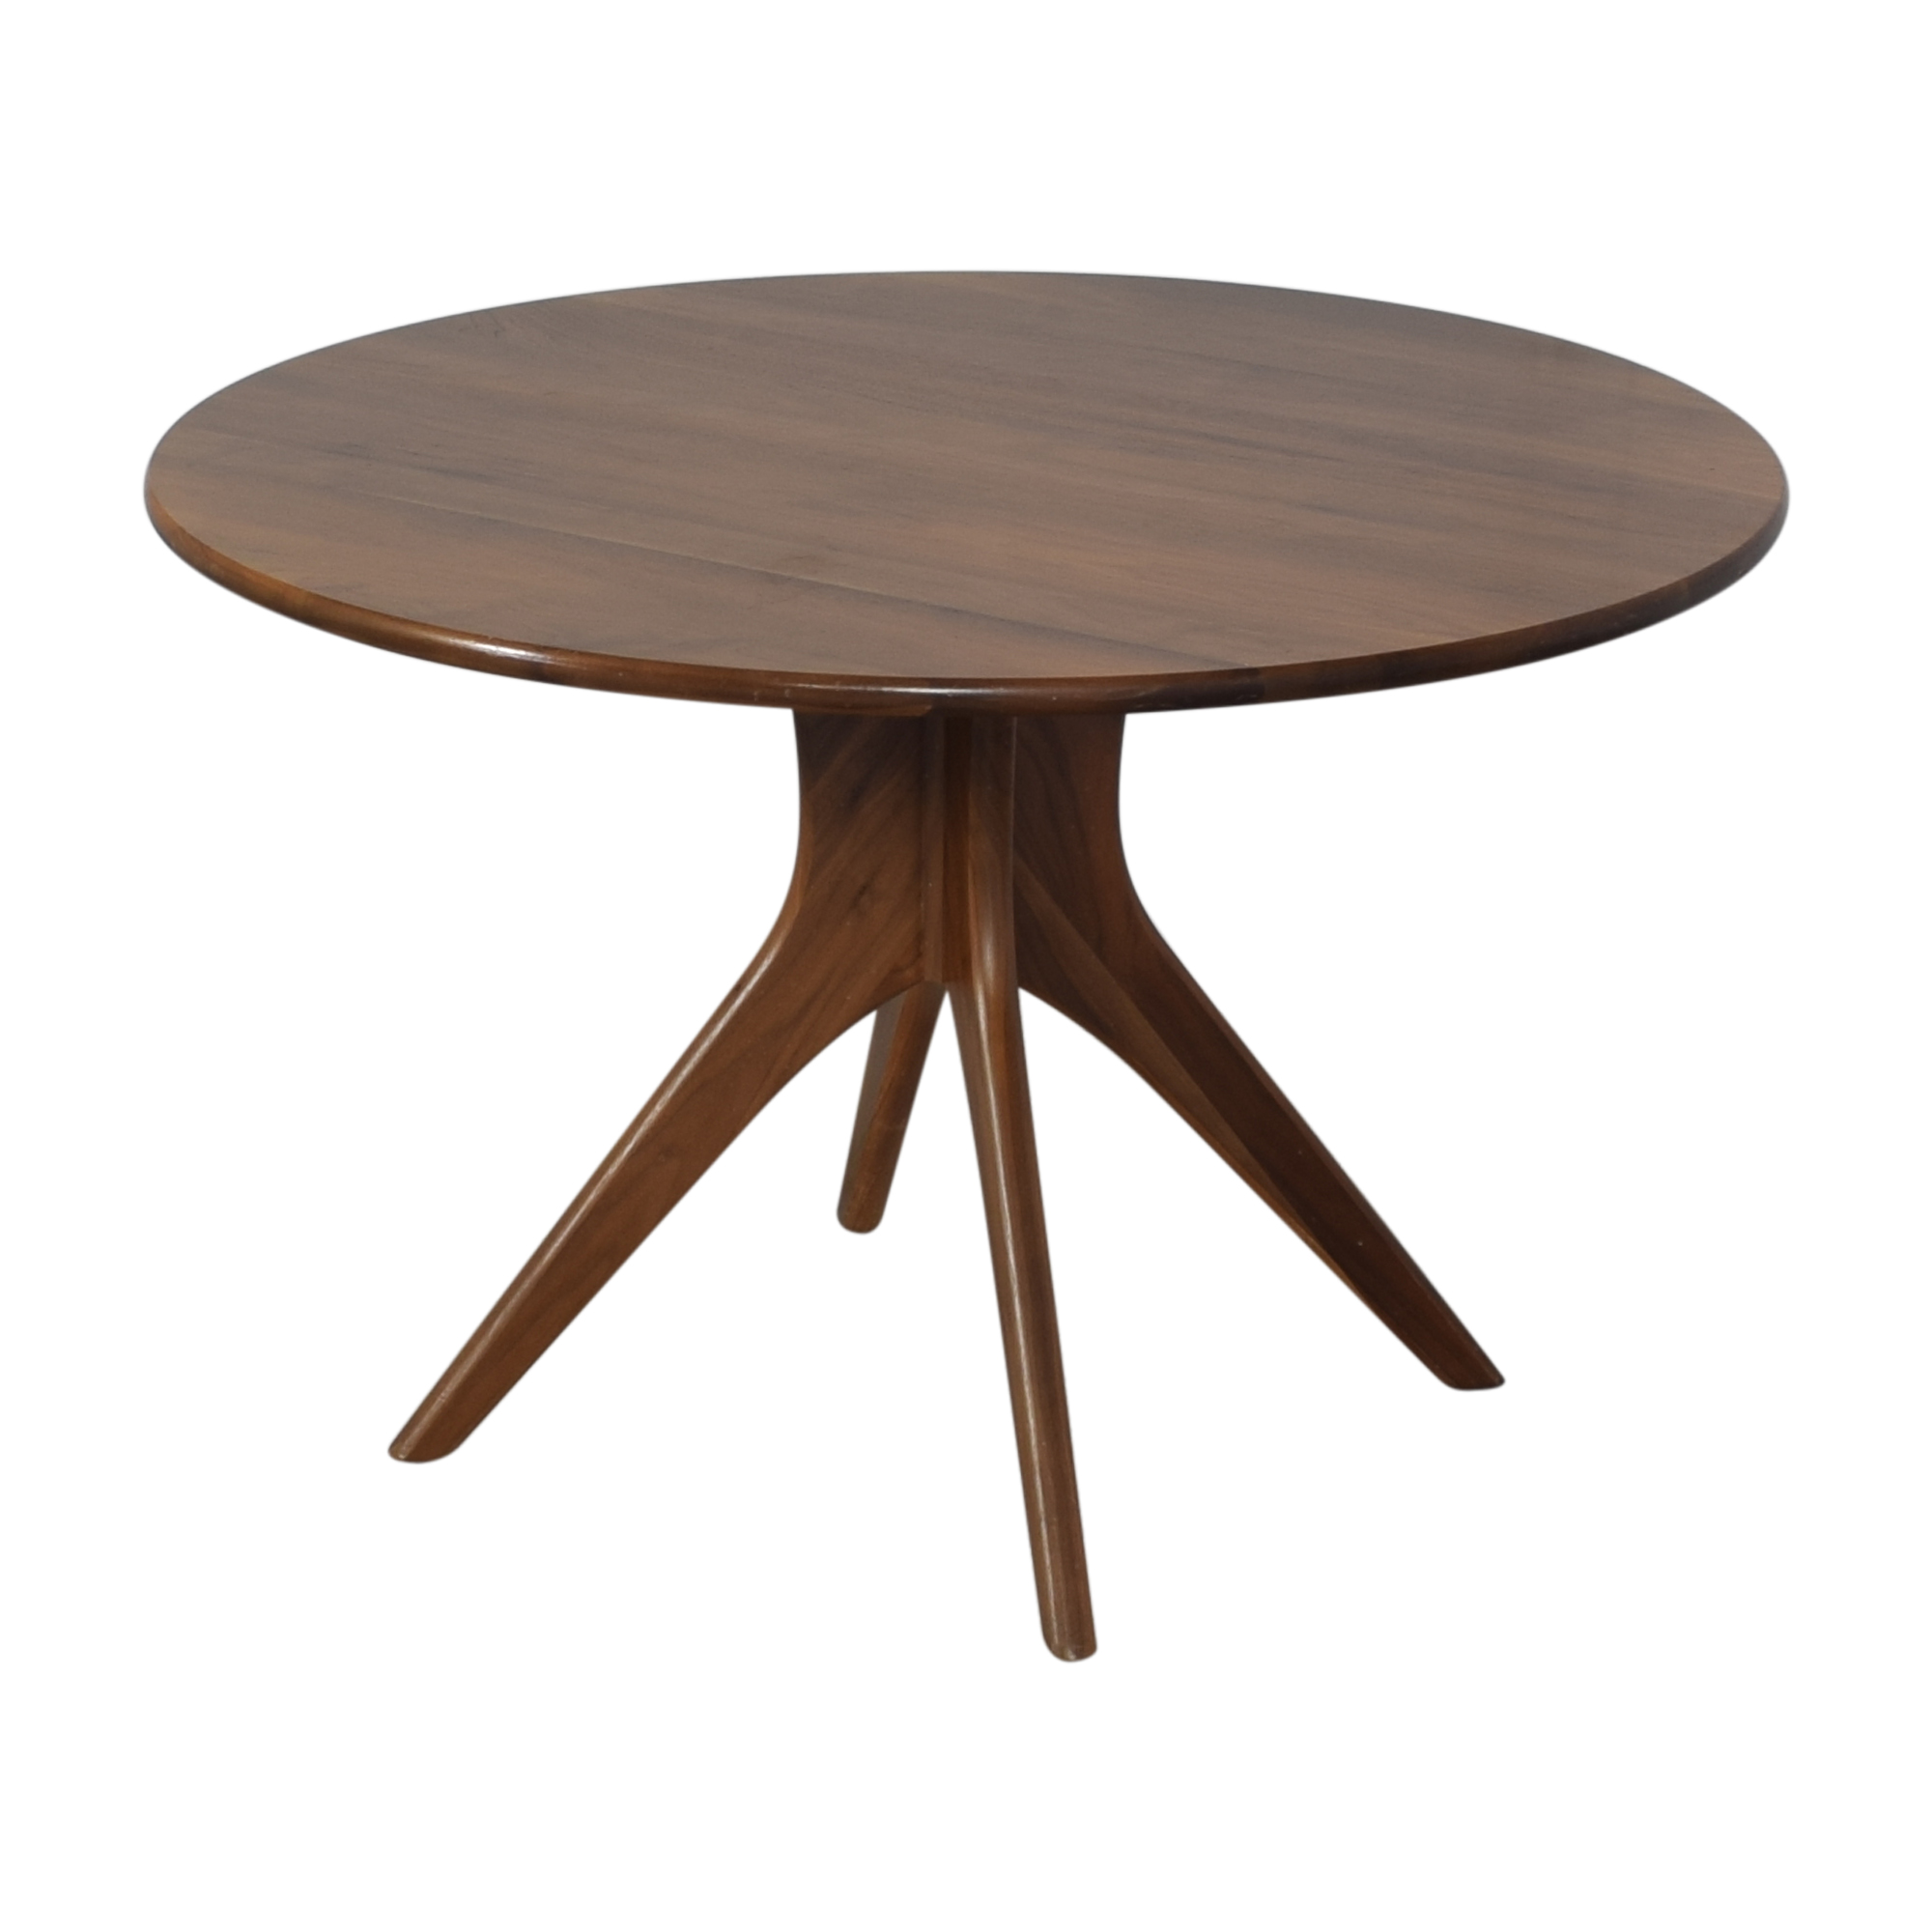 buy Room & Board Round Table Room & Board Dinner Tables